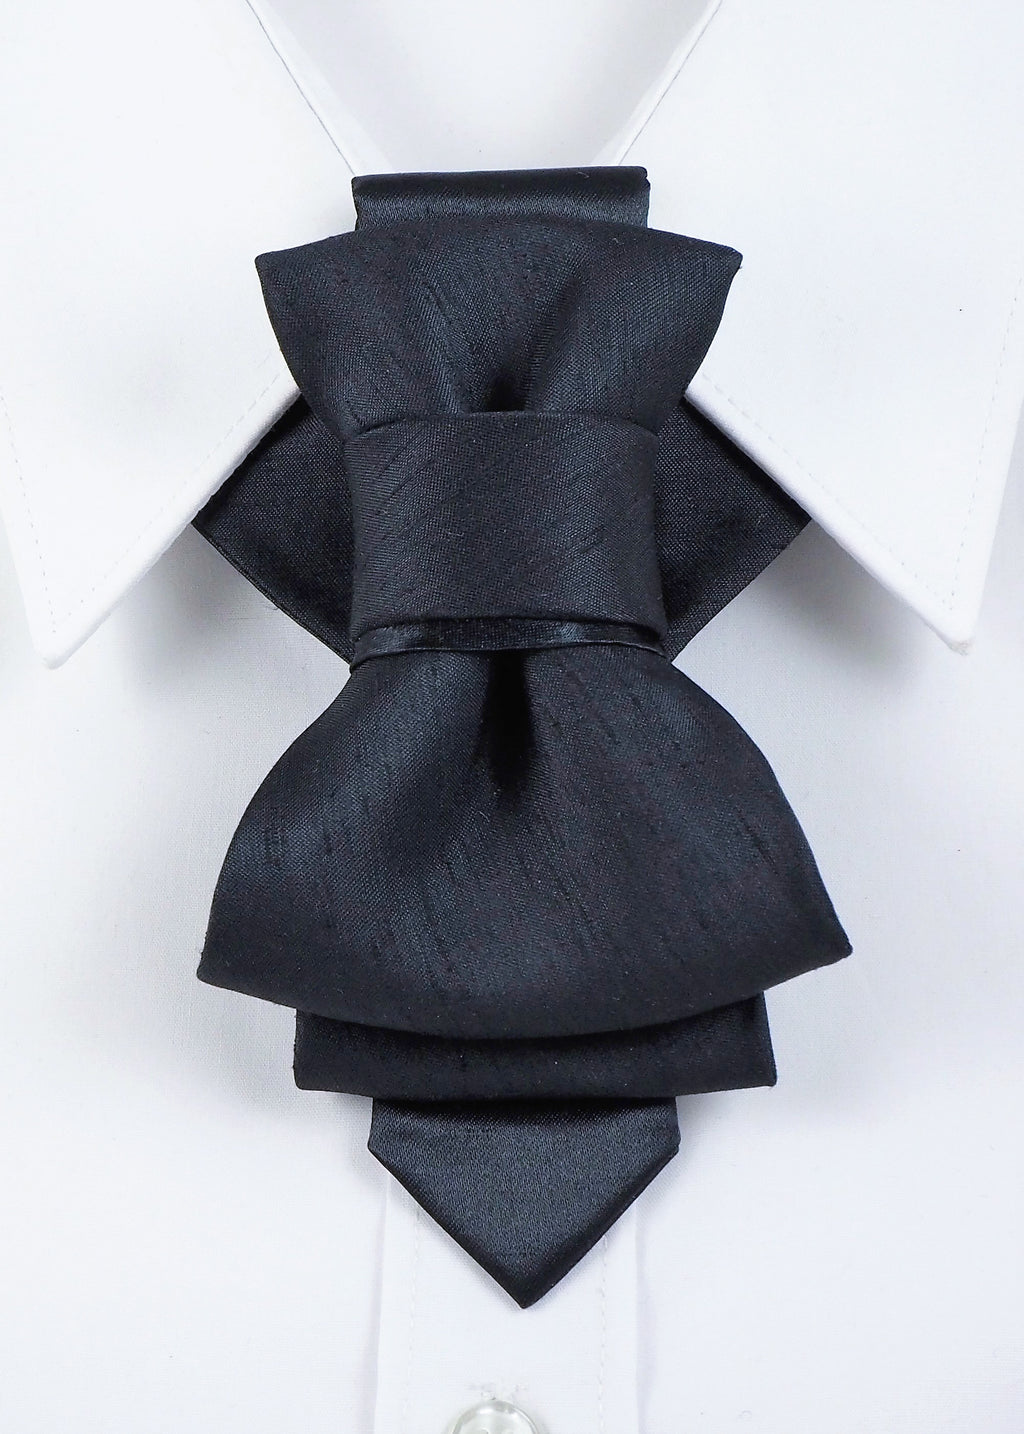 Bow Tie, Tie for wedding suite GRAPHITE hopper tie Bow tie